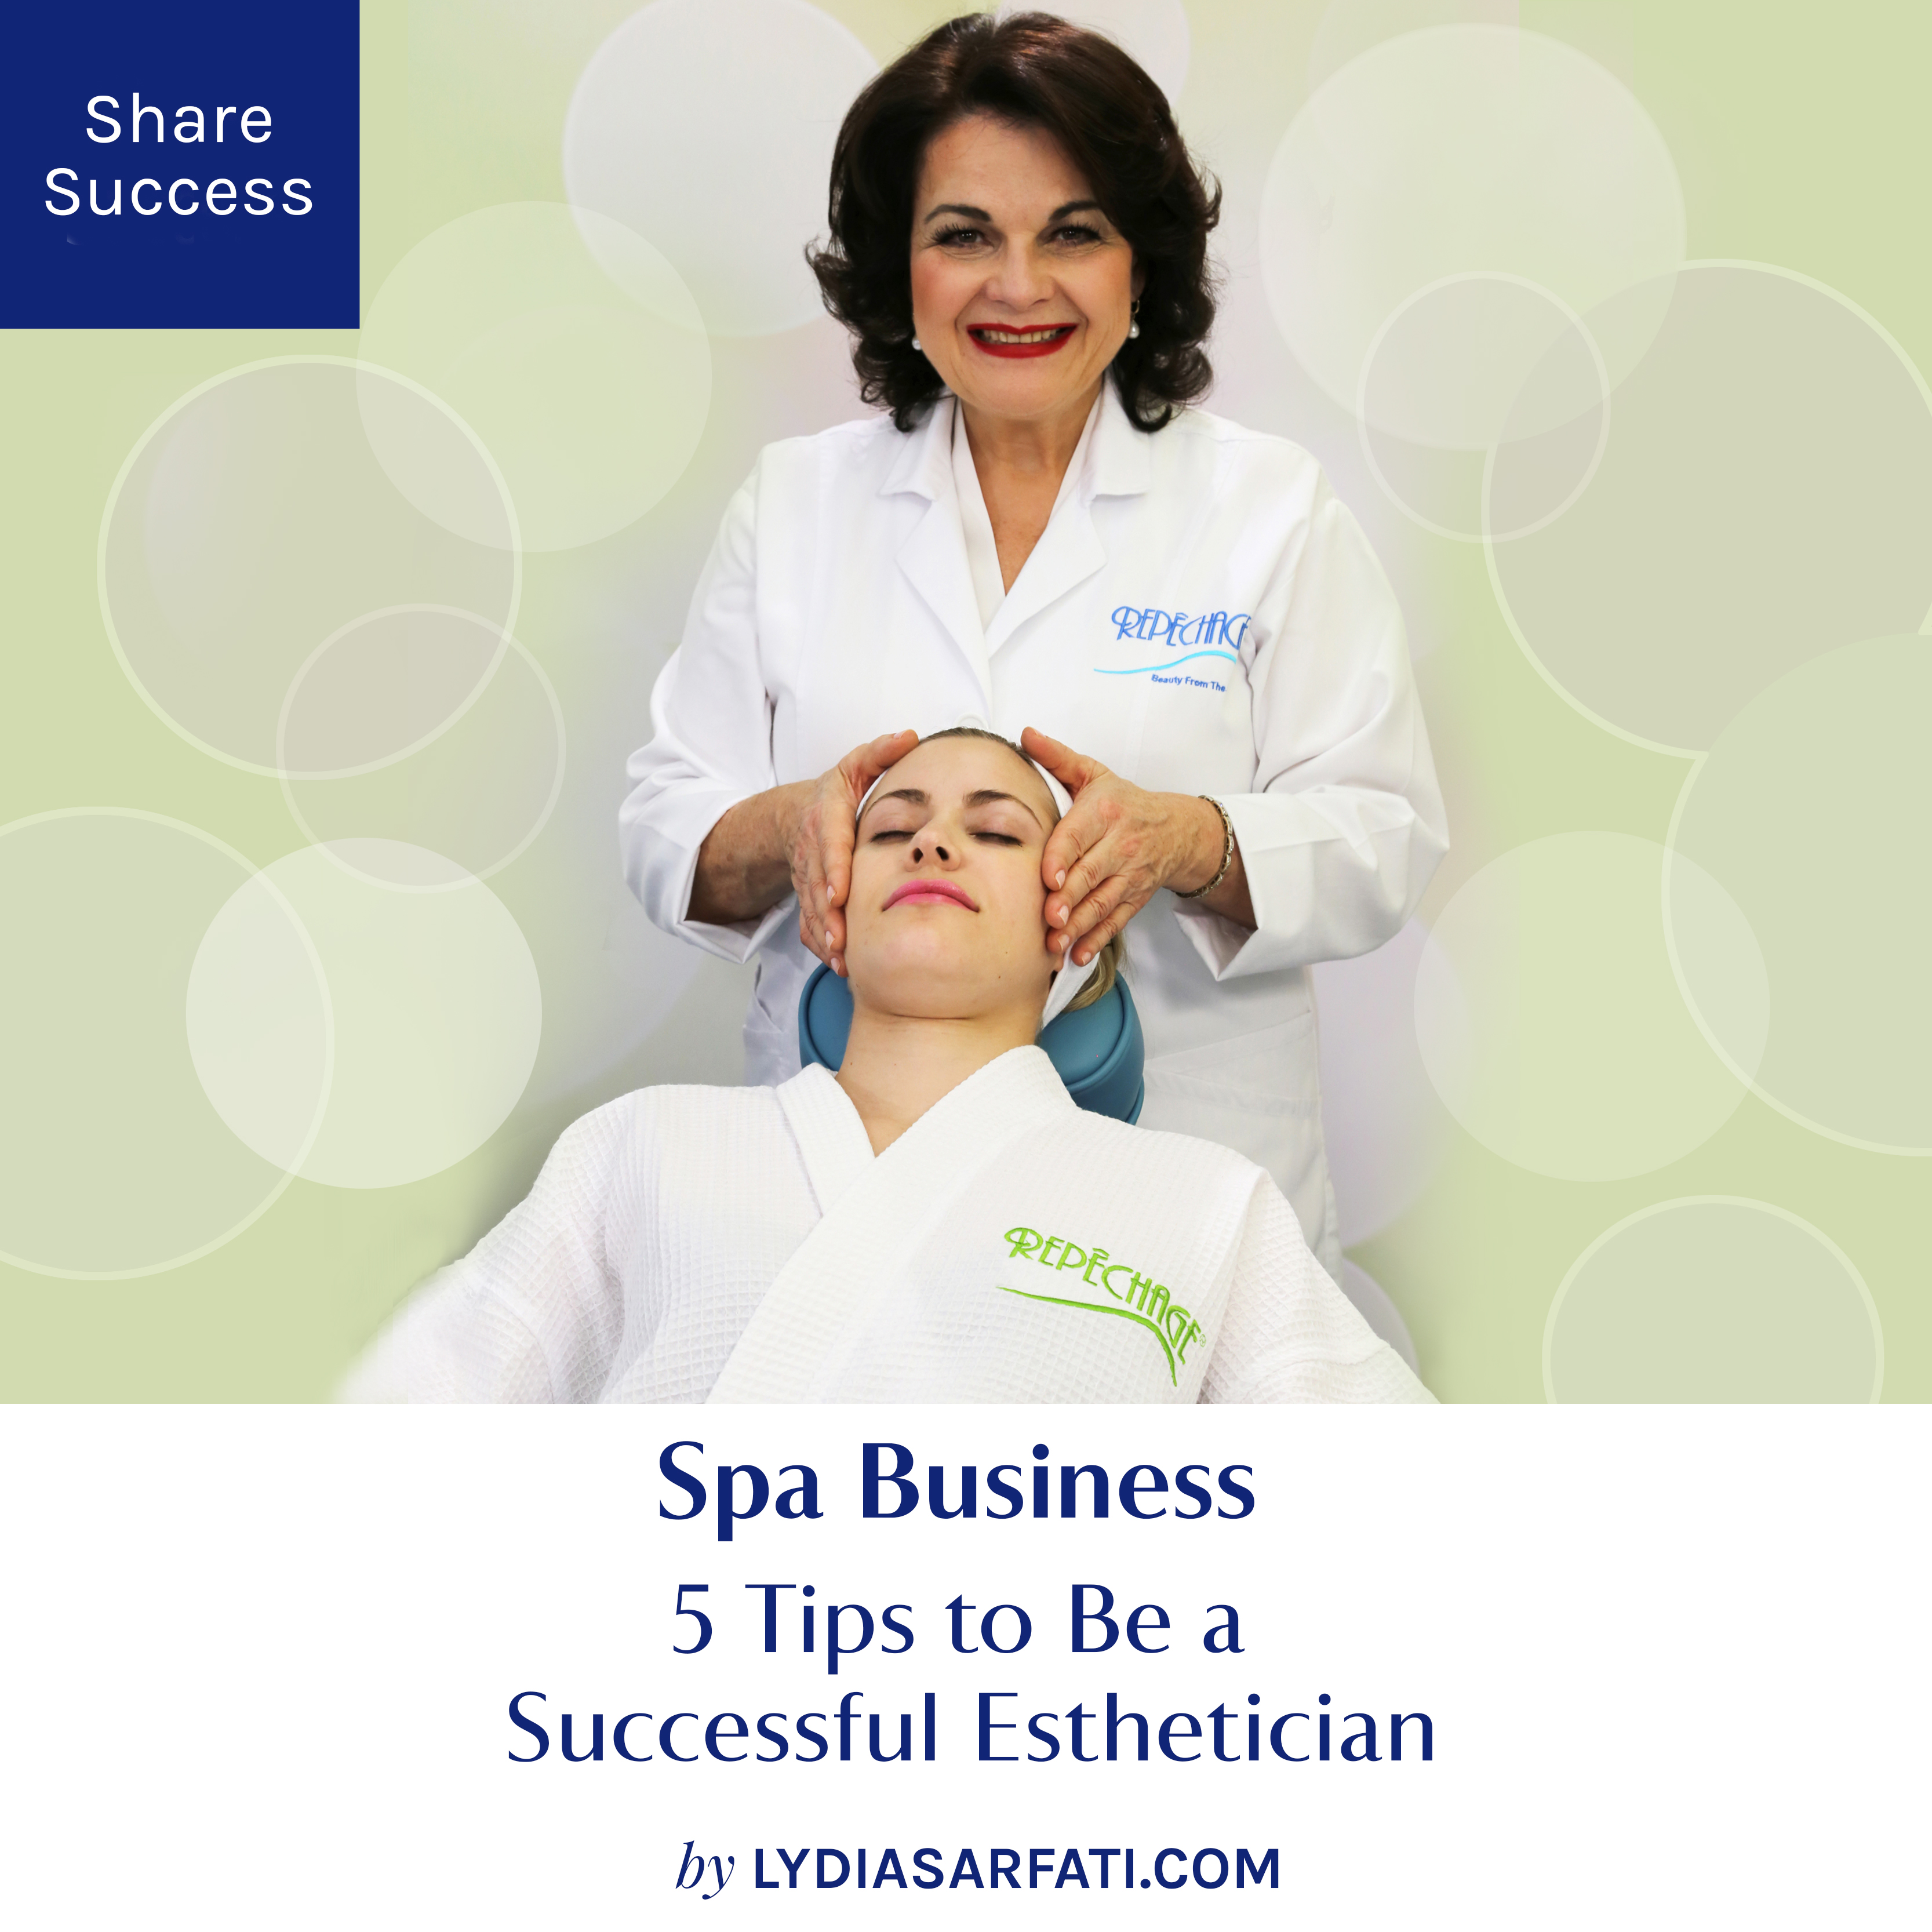 10 Tips to Be a Successful Esthetician